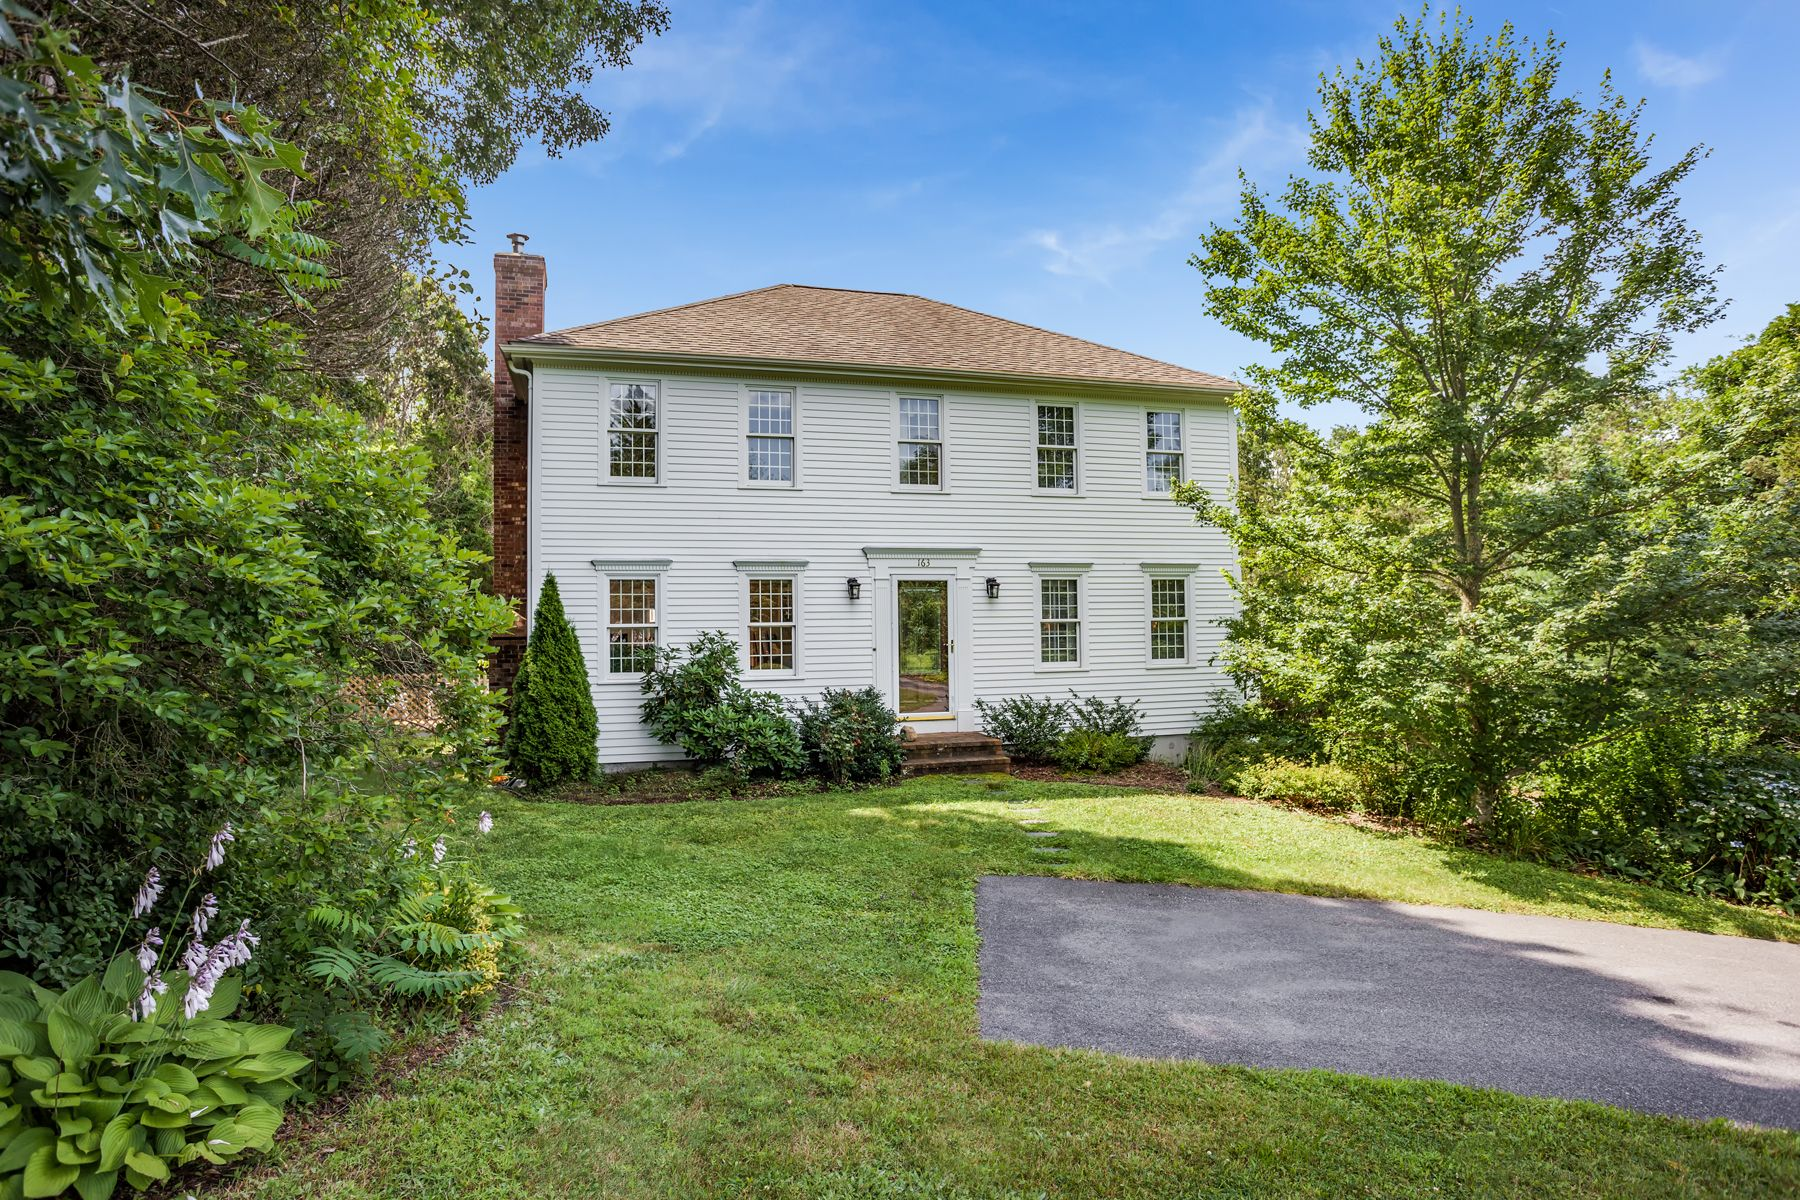 Single Family Homes for Sale at 163 Percival Drive West Barnstable, Massachusetts 02668 United States